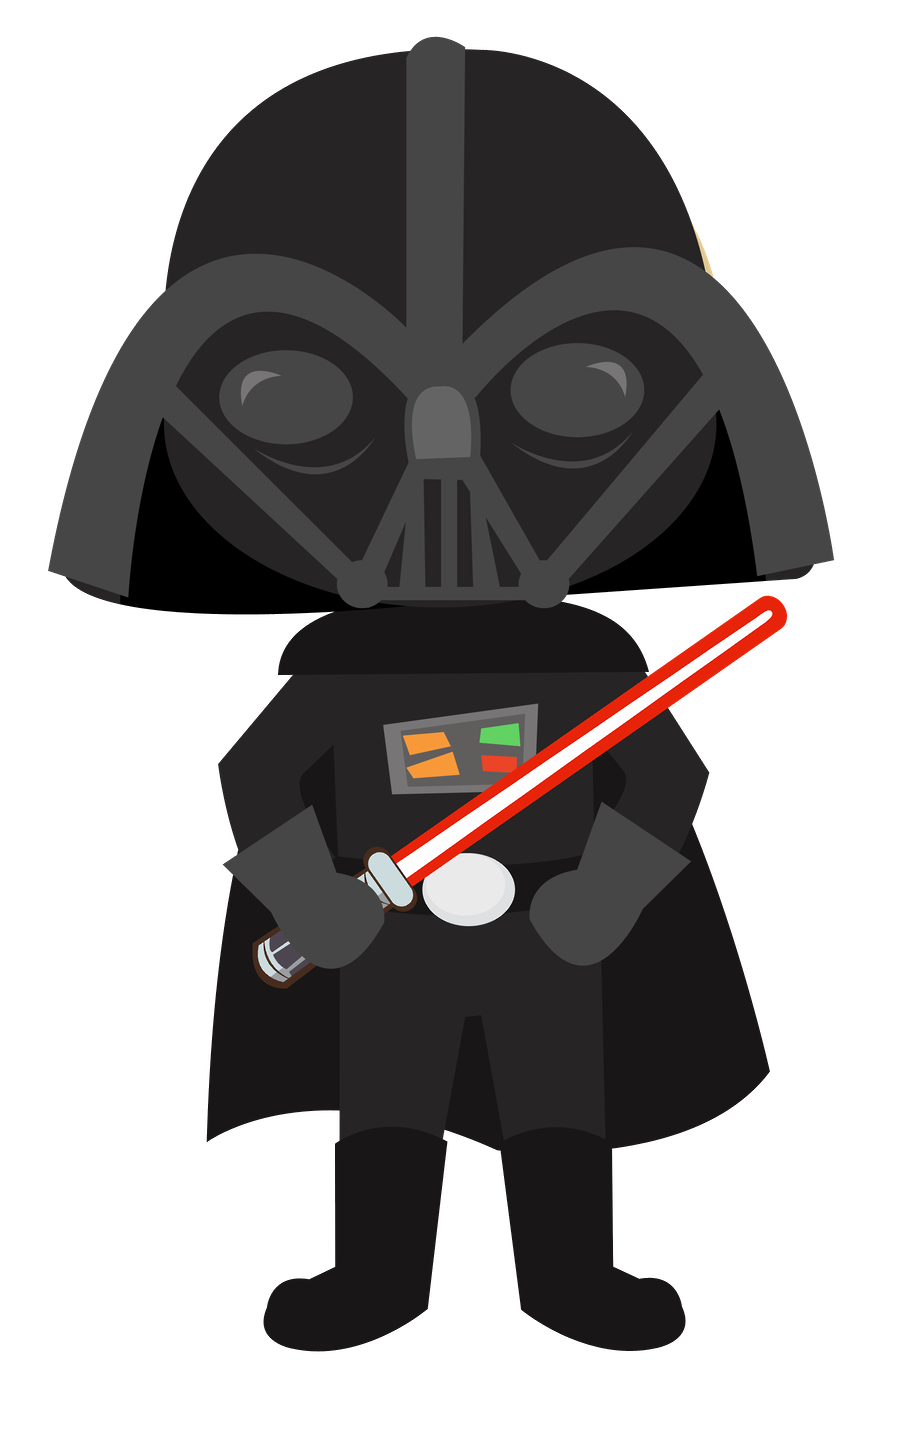 Star wars characters clipart png image free stock Star Wars - Minus | Felt Board Images | Pinterest | Star, Darth ... image free stock